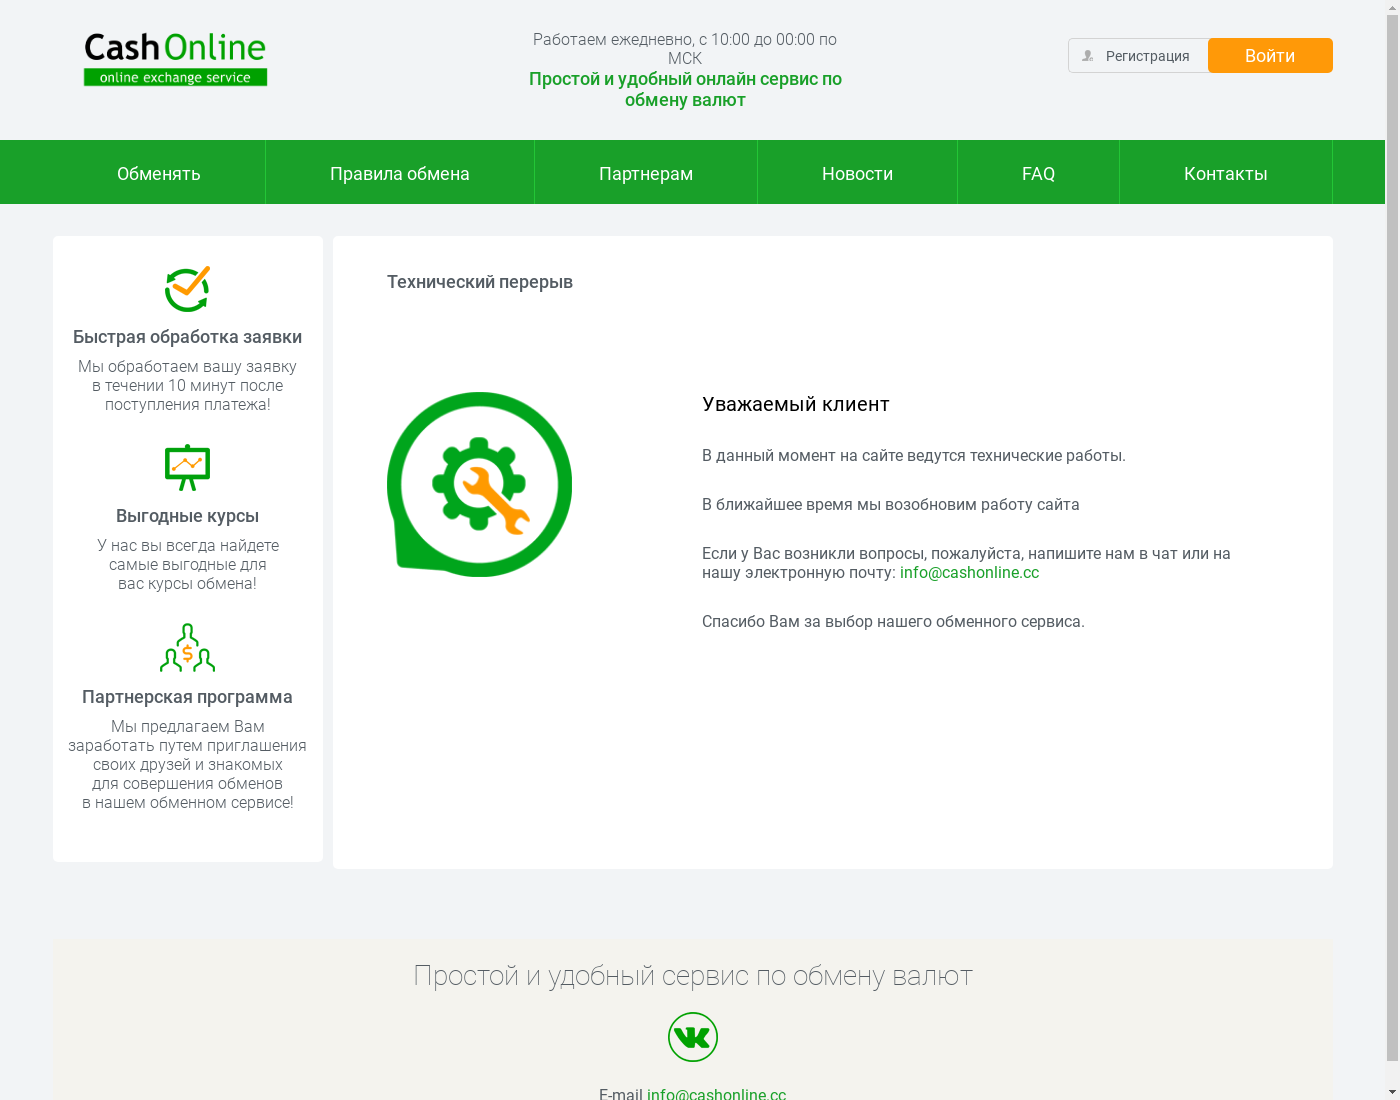 CashOnline user interface: the home page in English